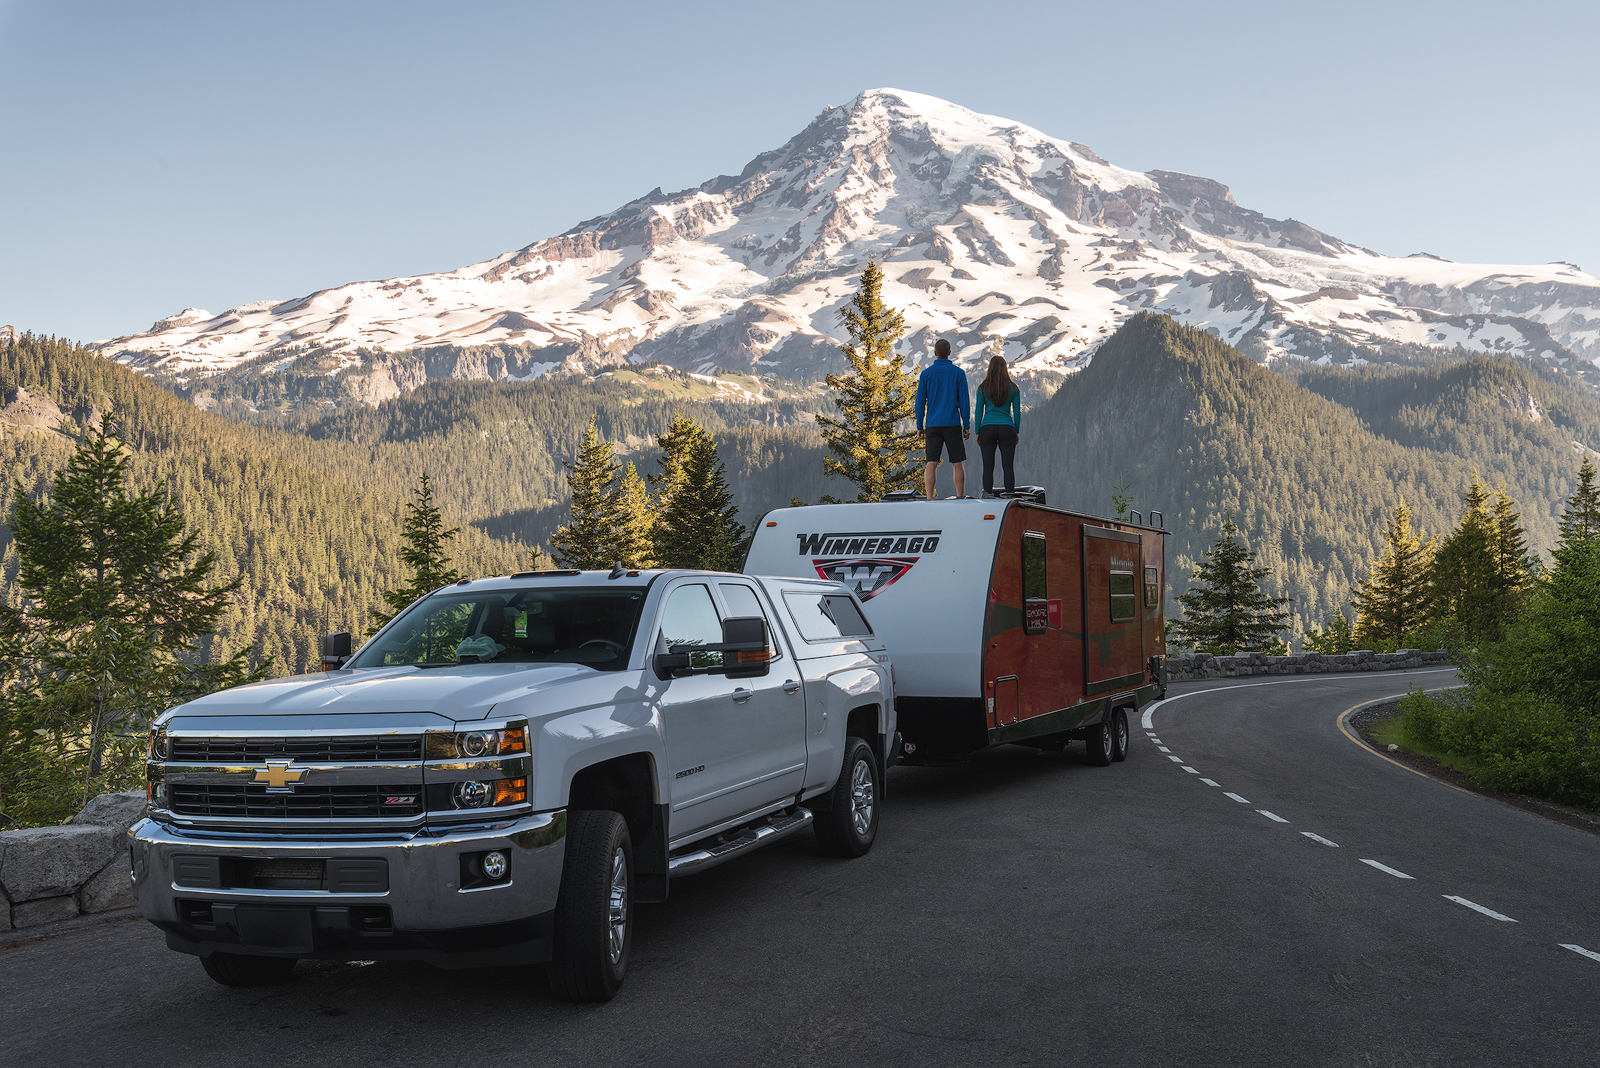 USA Explored: Ultimate RV Road Trip Planning Tools